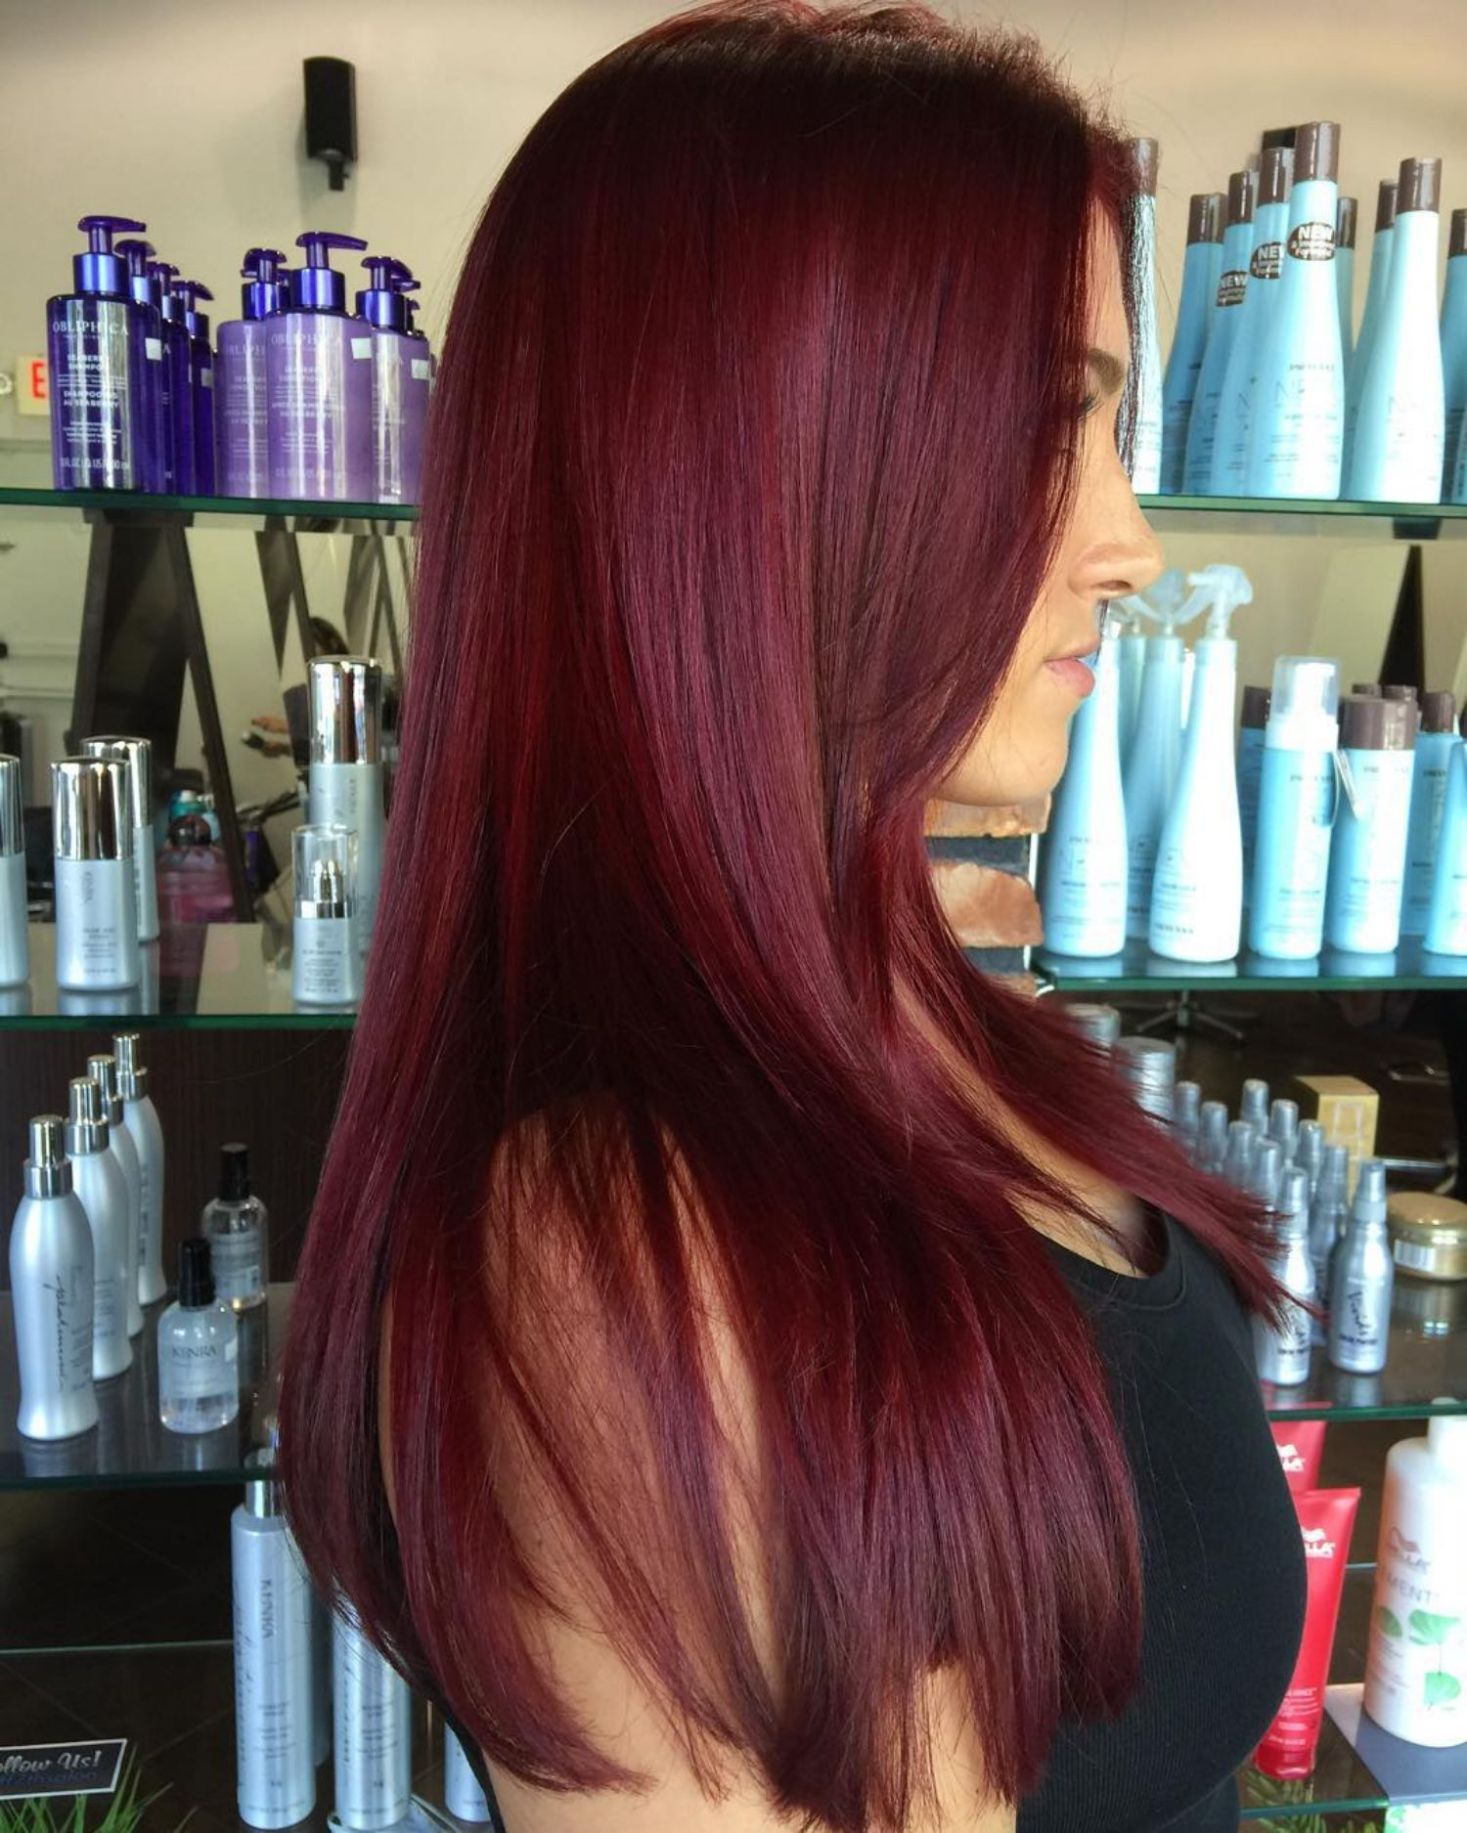 45 Shades Of Burgundy Hair Dark Burgundy Maroon Burgundy With Red Purple And Brown Highlights Wine Hair Color Maroon Hair Colors Eggplant Colored Hair